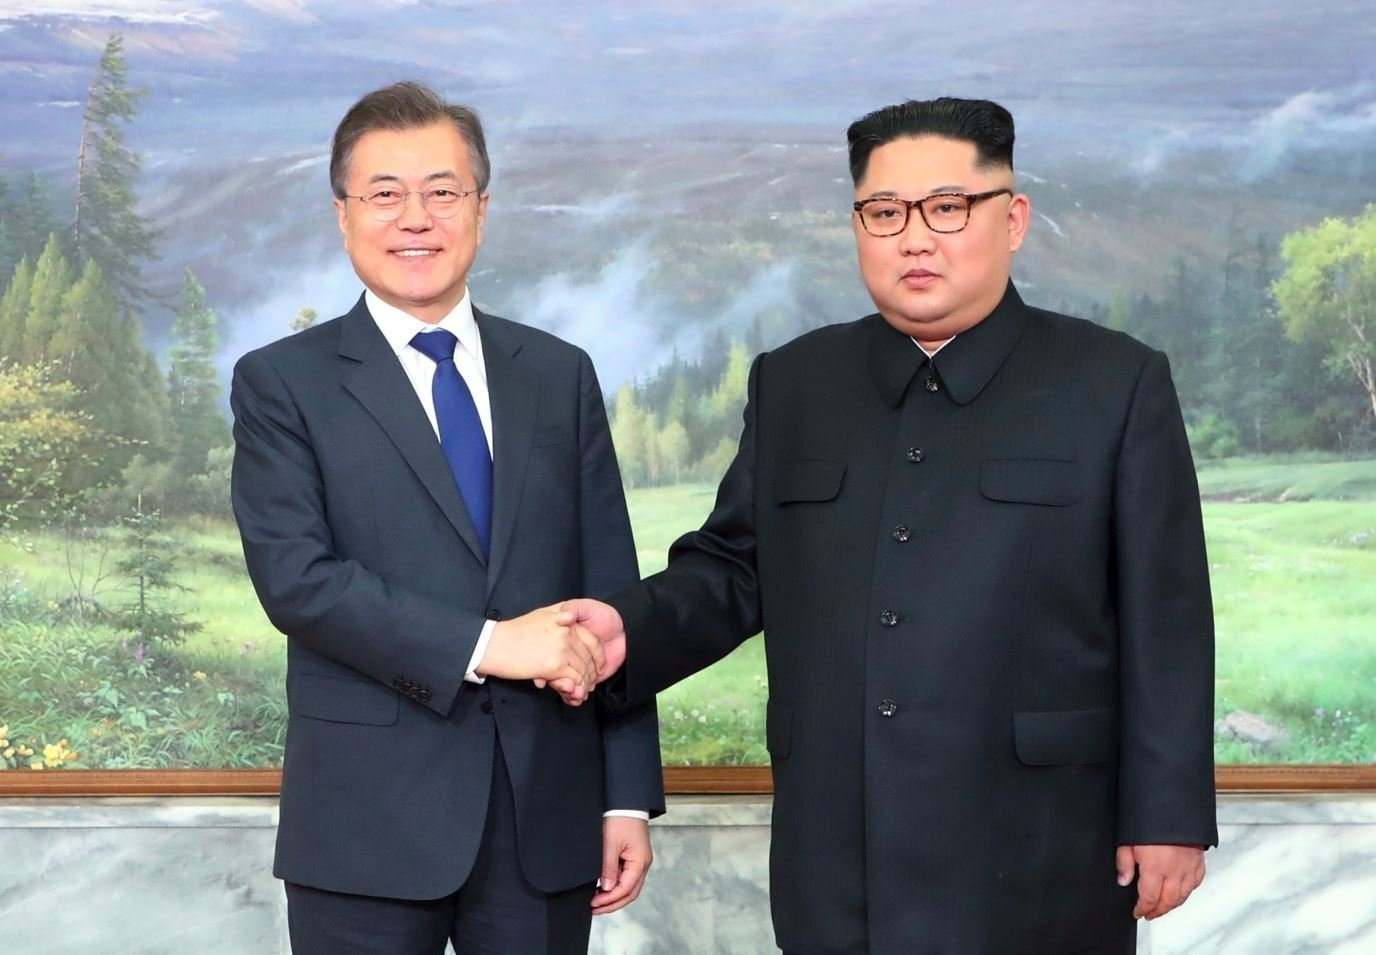 The North and South Korean leaders greet each other before Saturday's meeting. (CNN photo)